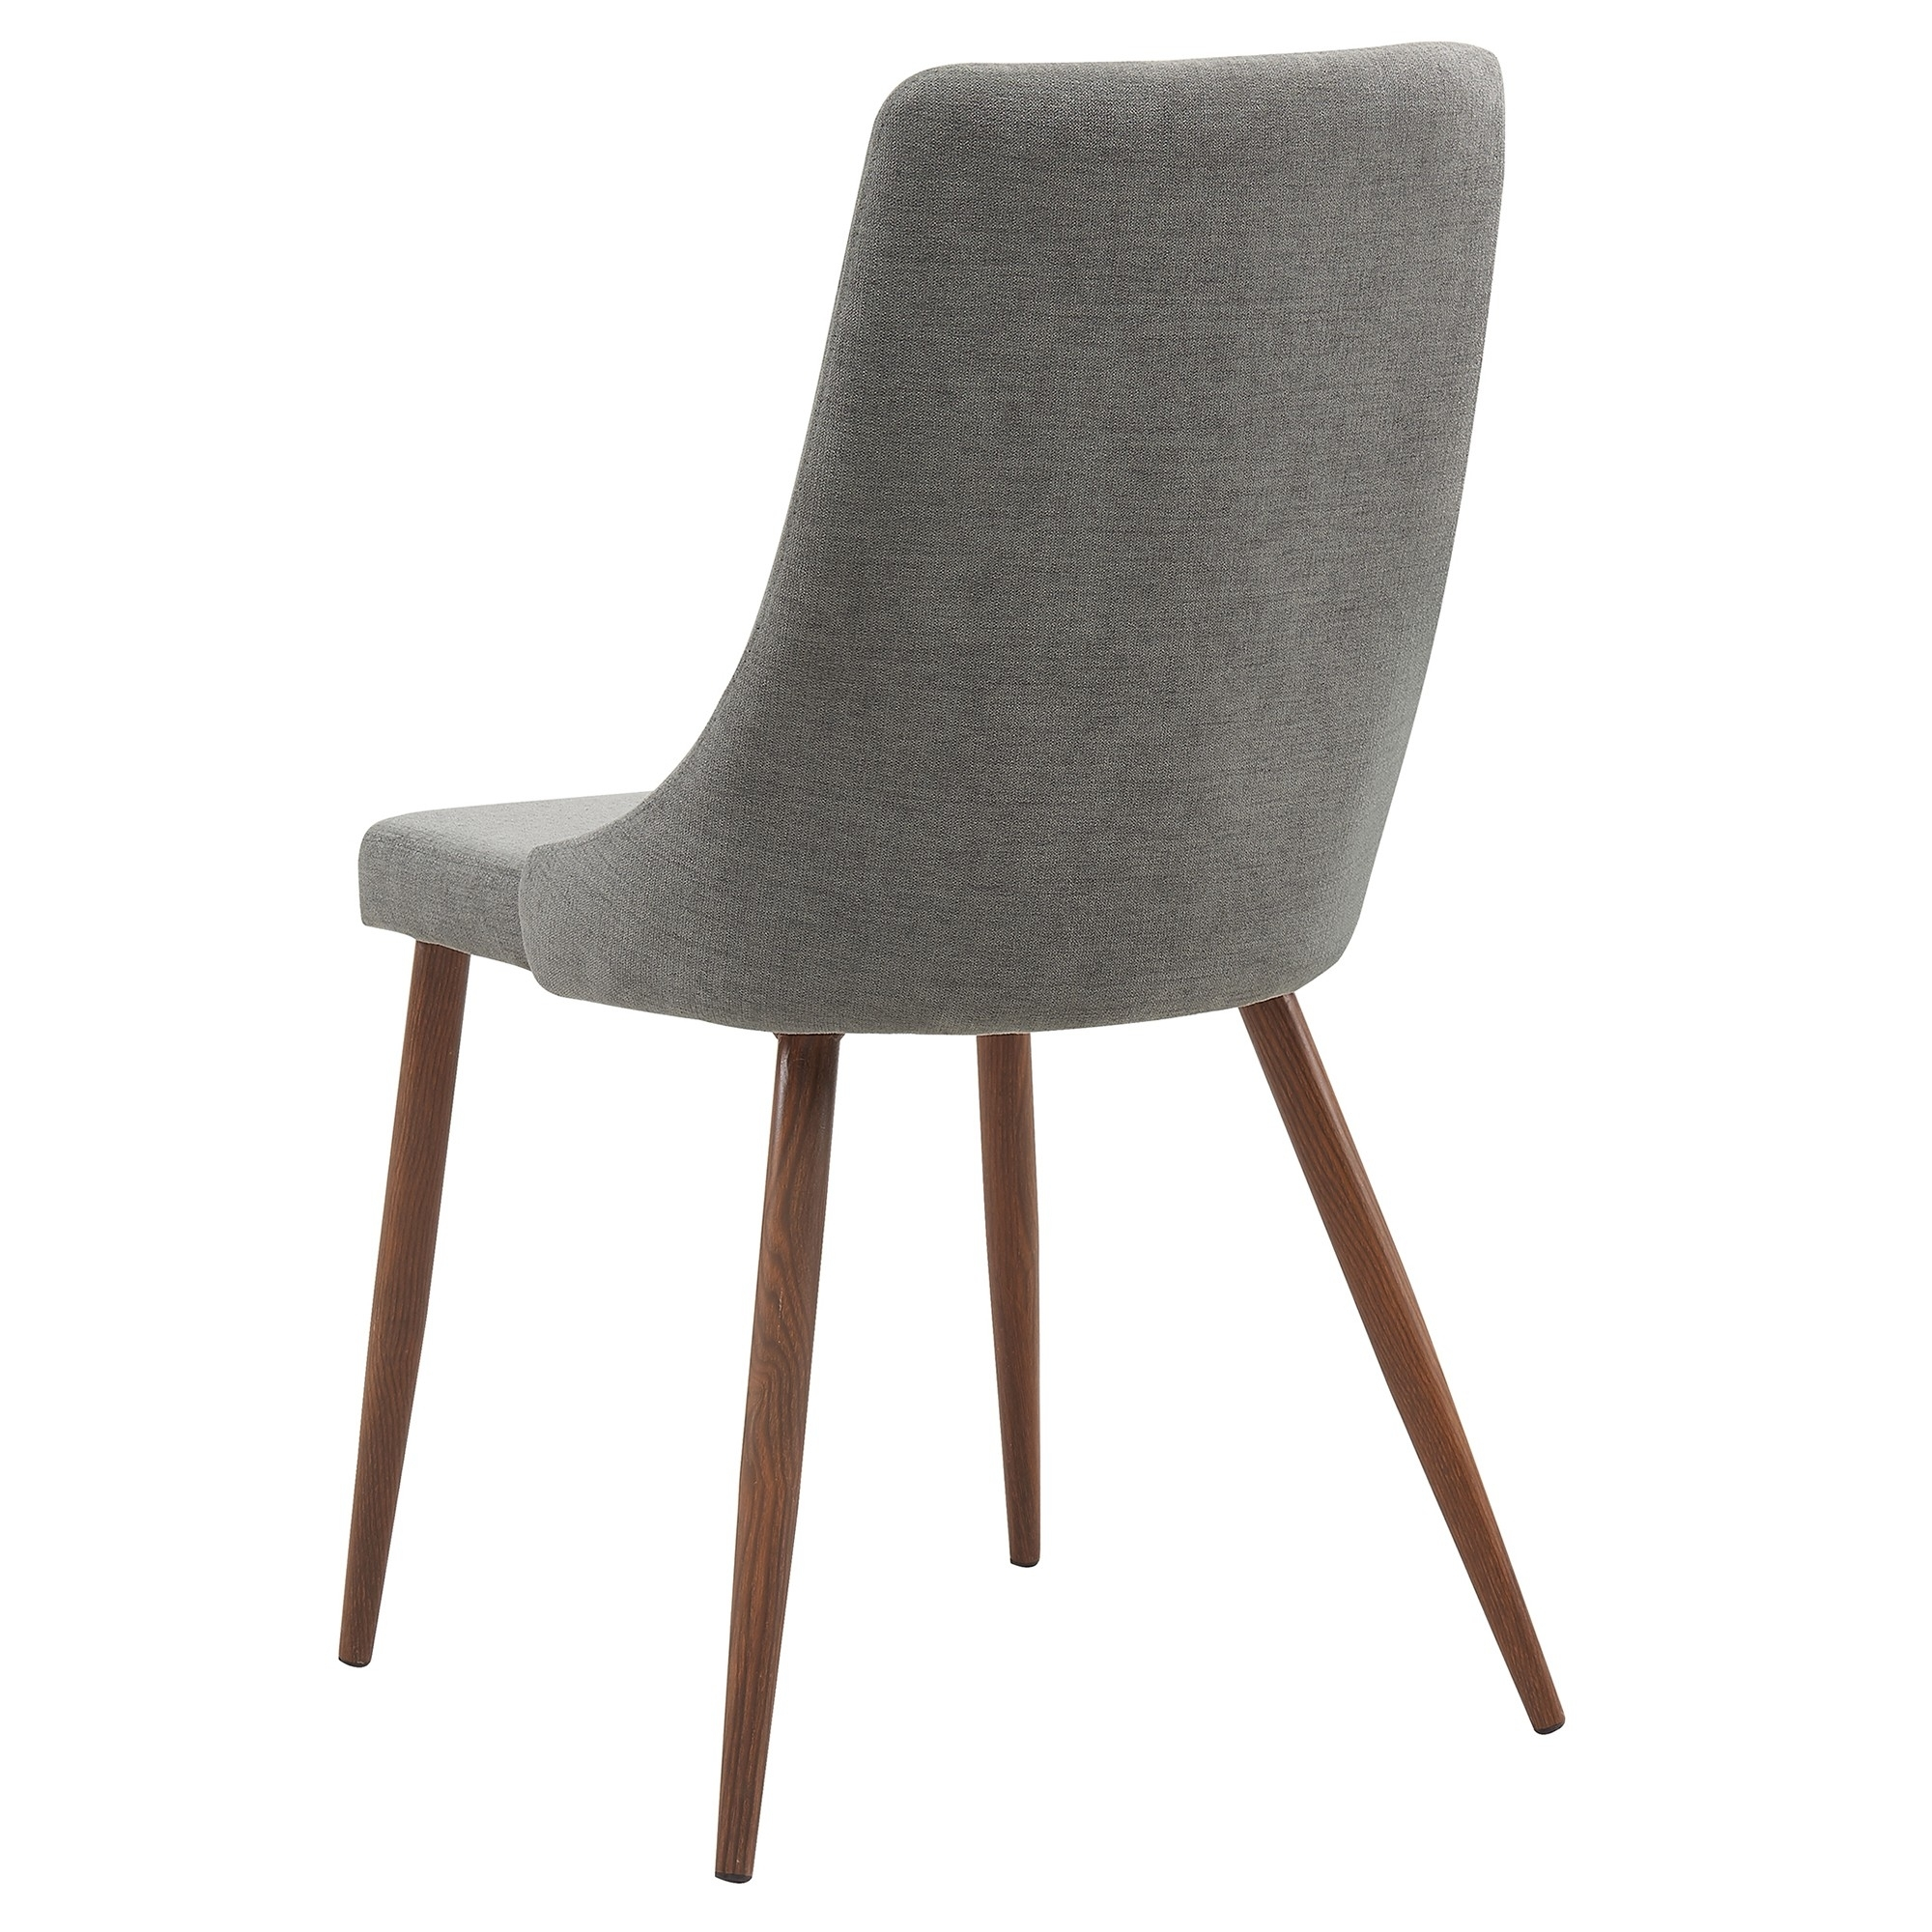 Inspiration about Recent Cora Side Chairs Inside Cora Side Chair In Grey (#6 of 20)